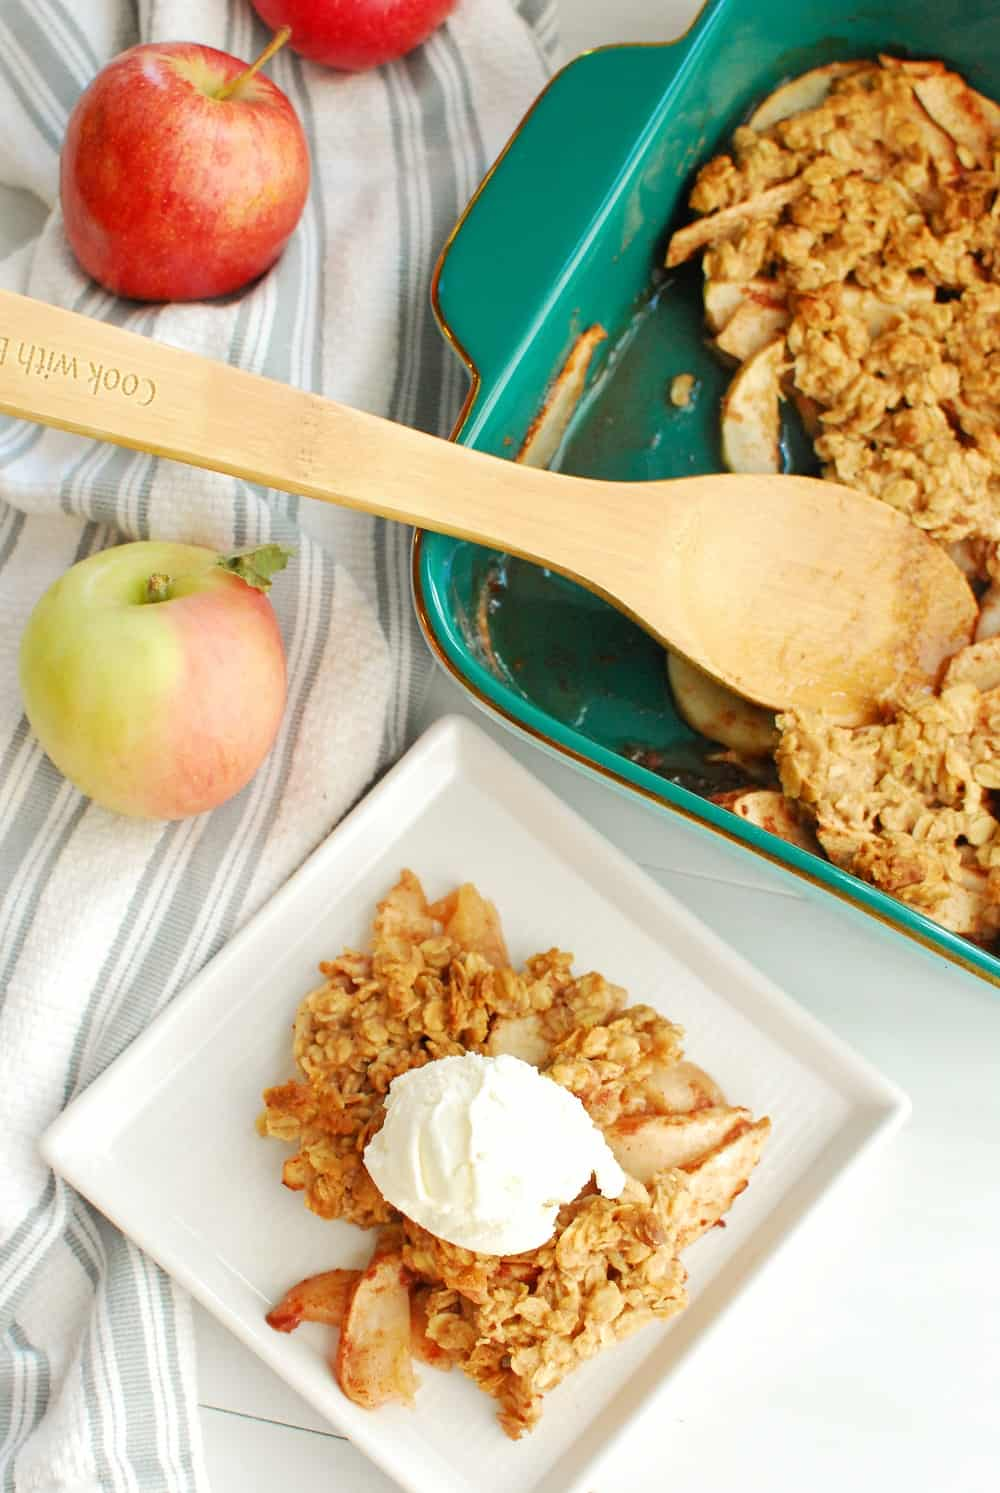 a scoop of honey apple crisp on a white plate with a scoop of ice cream, next to a baking dish of apple crisp